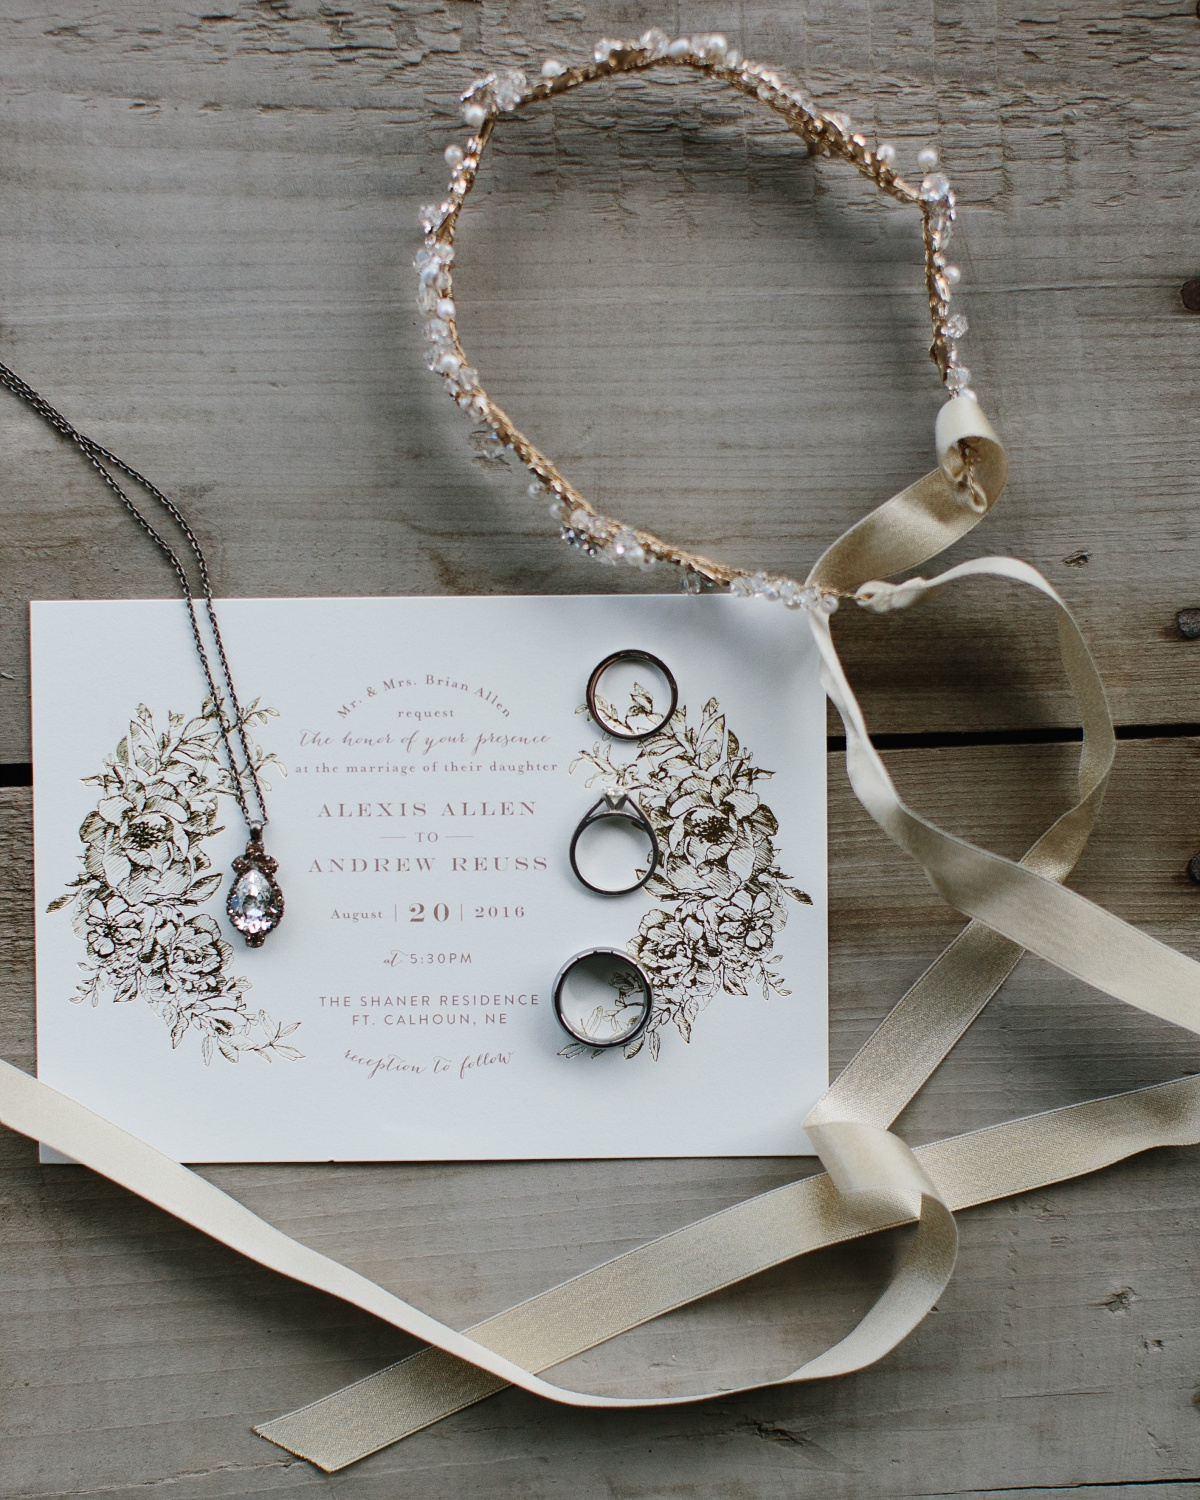 wedding invitation, wedding rings, and jewelry displayed together